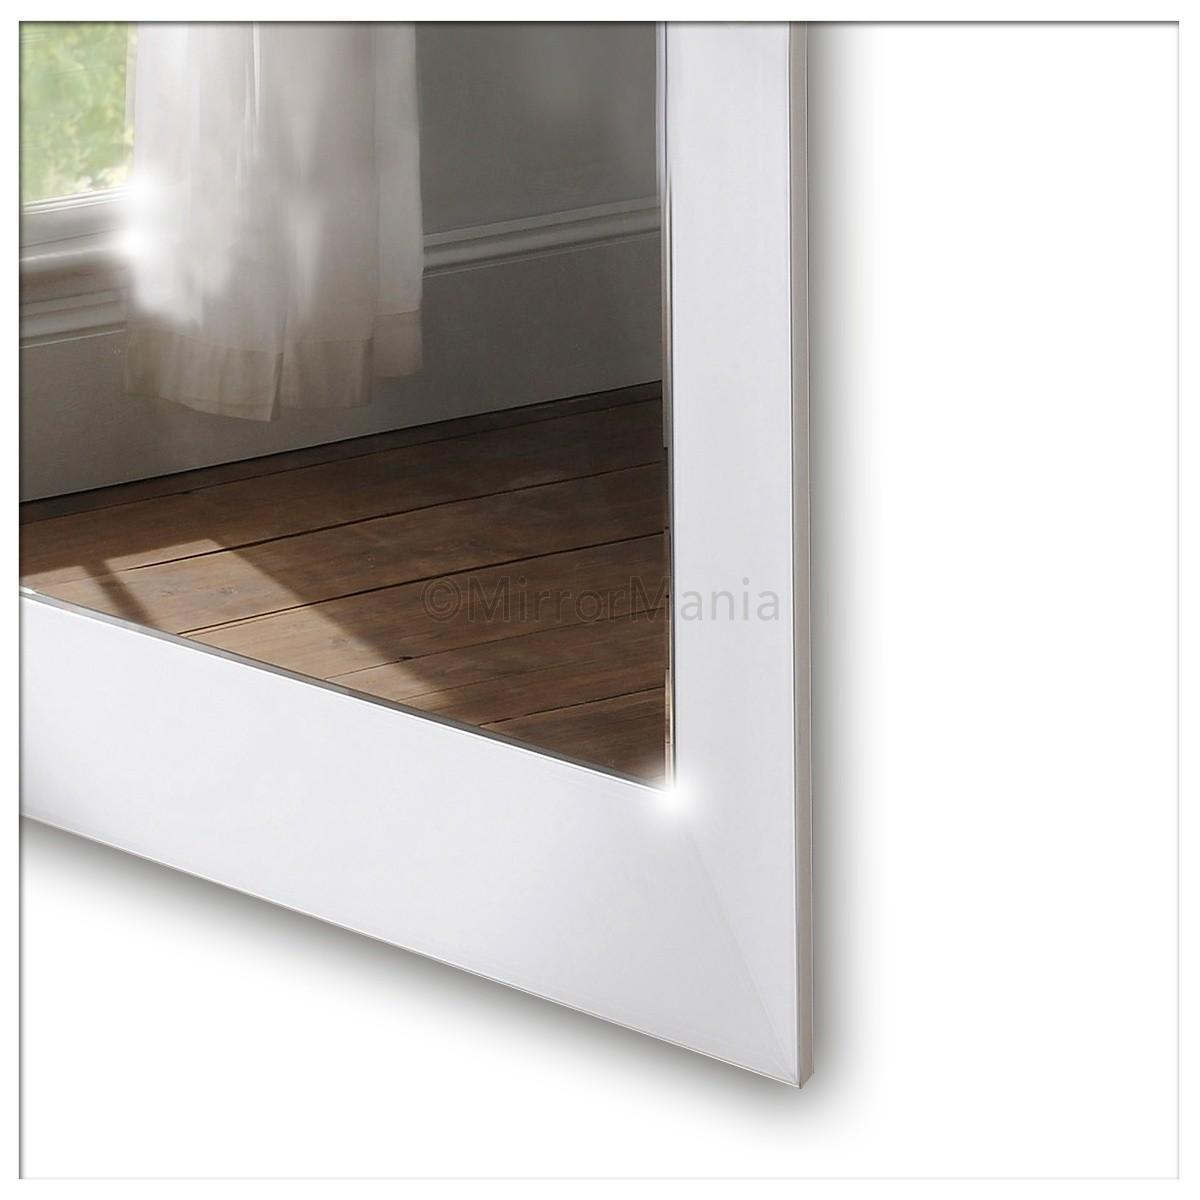 Zeus Modern Bevelled Wall Mirror White Glass